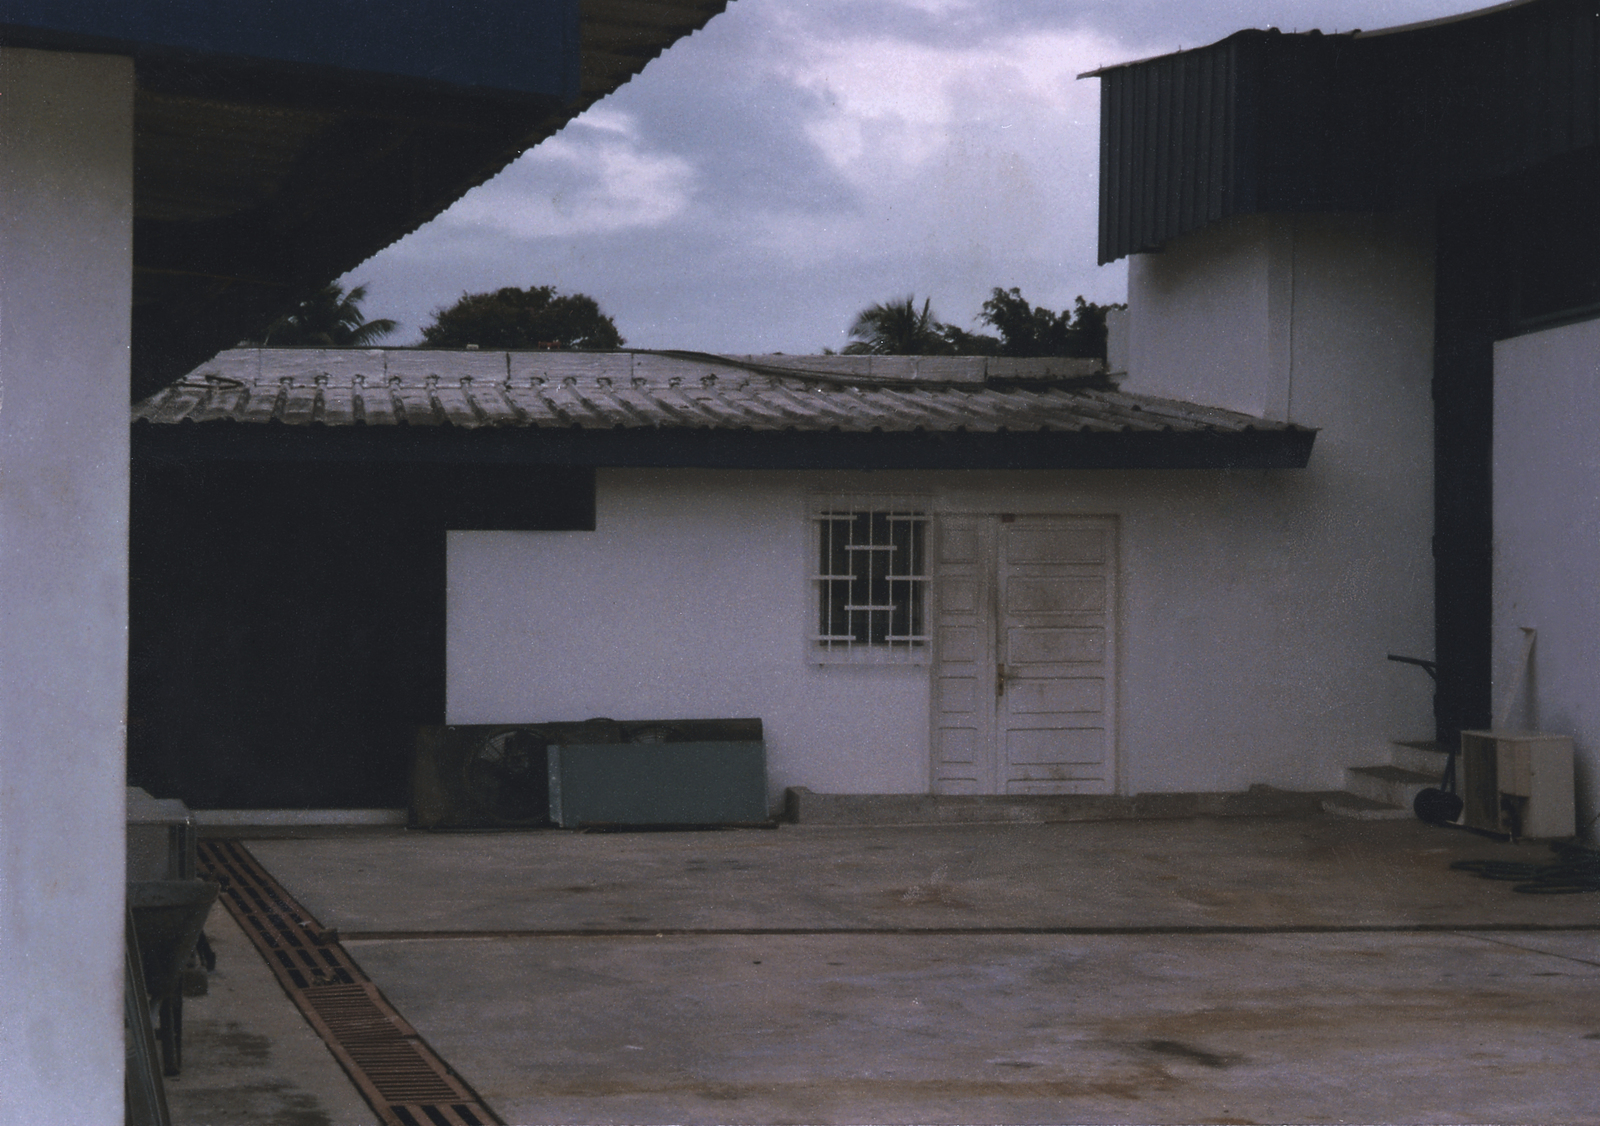 Abidjan - Compound Site - 1988